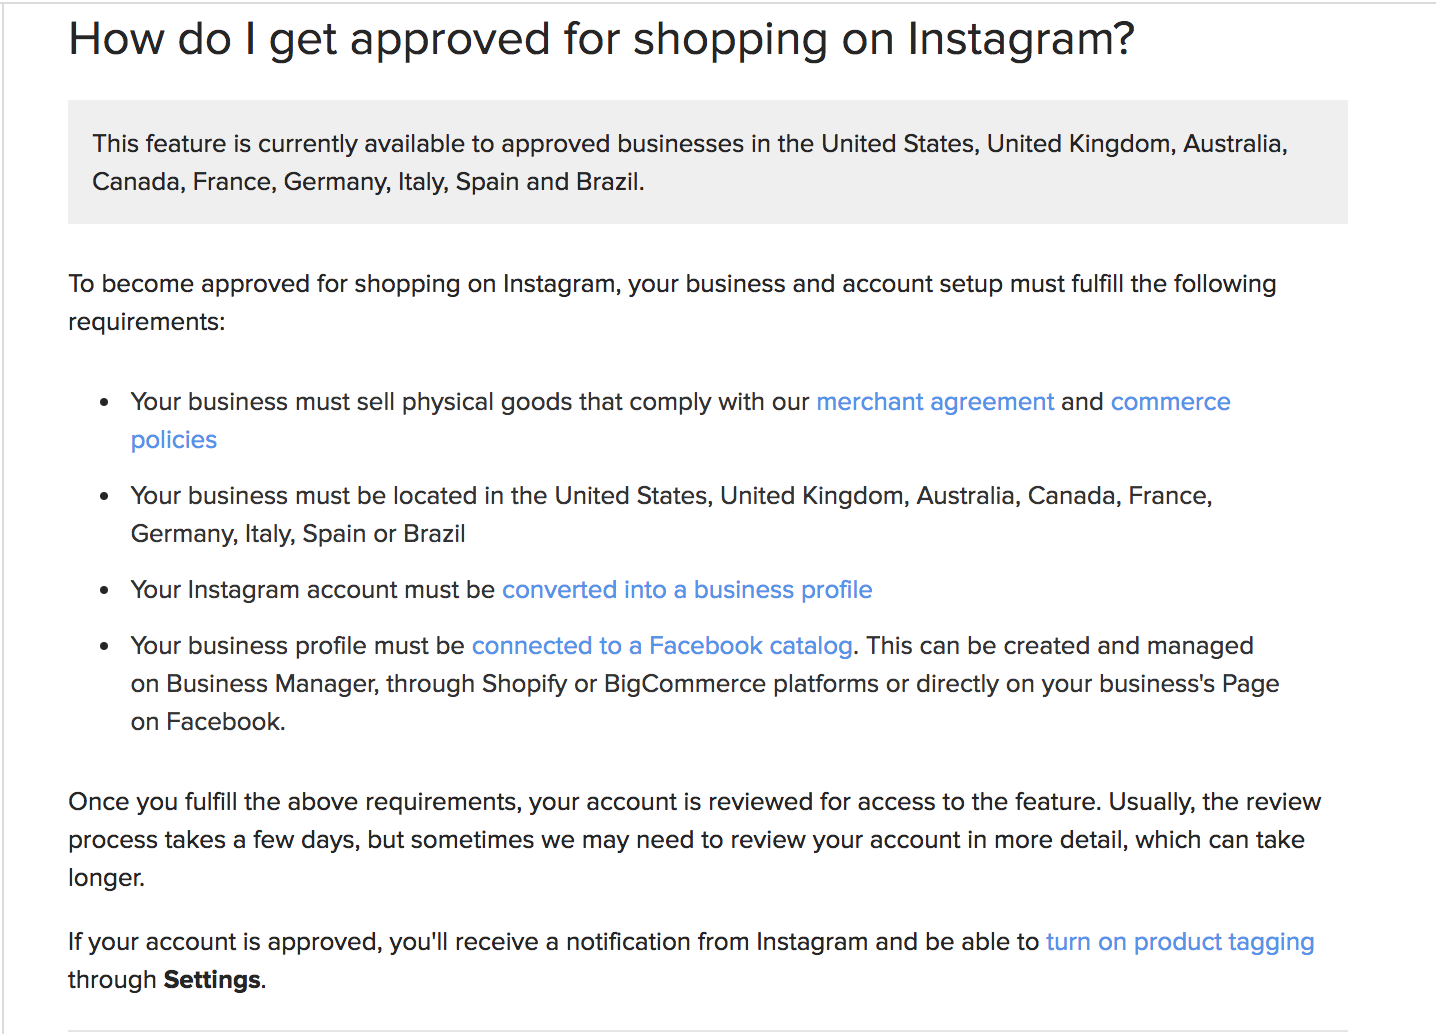 How Do I Get Approved For Shopping On Instagram